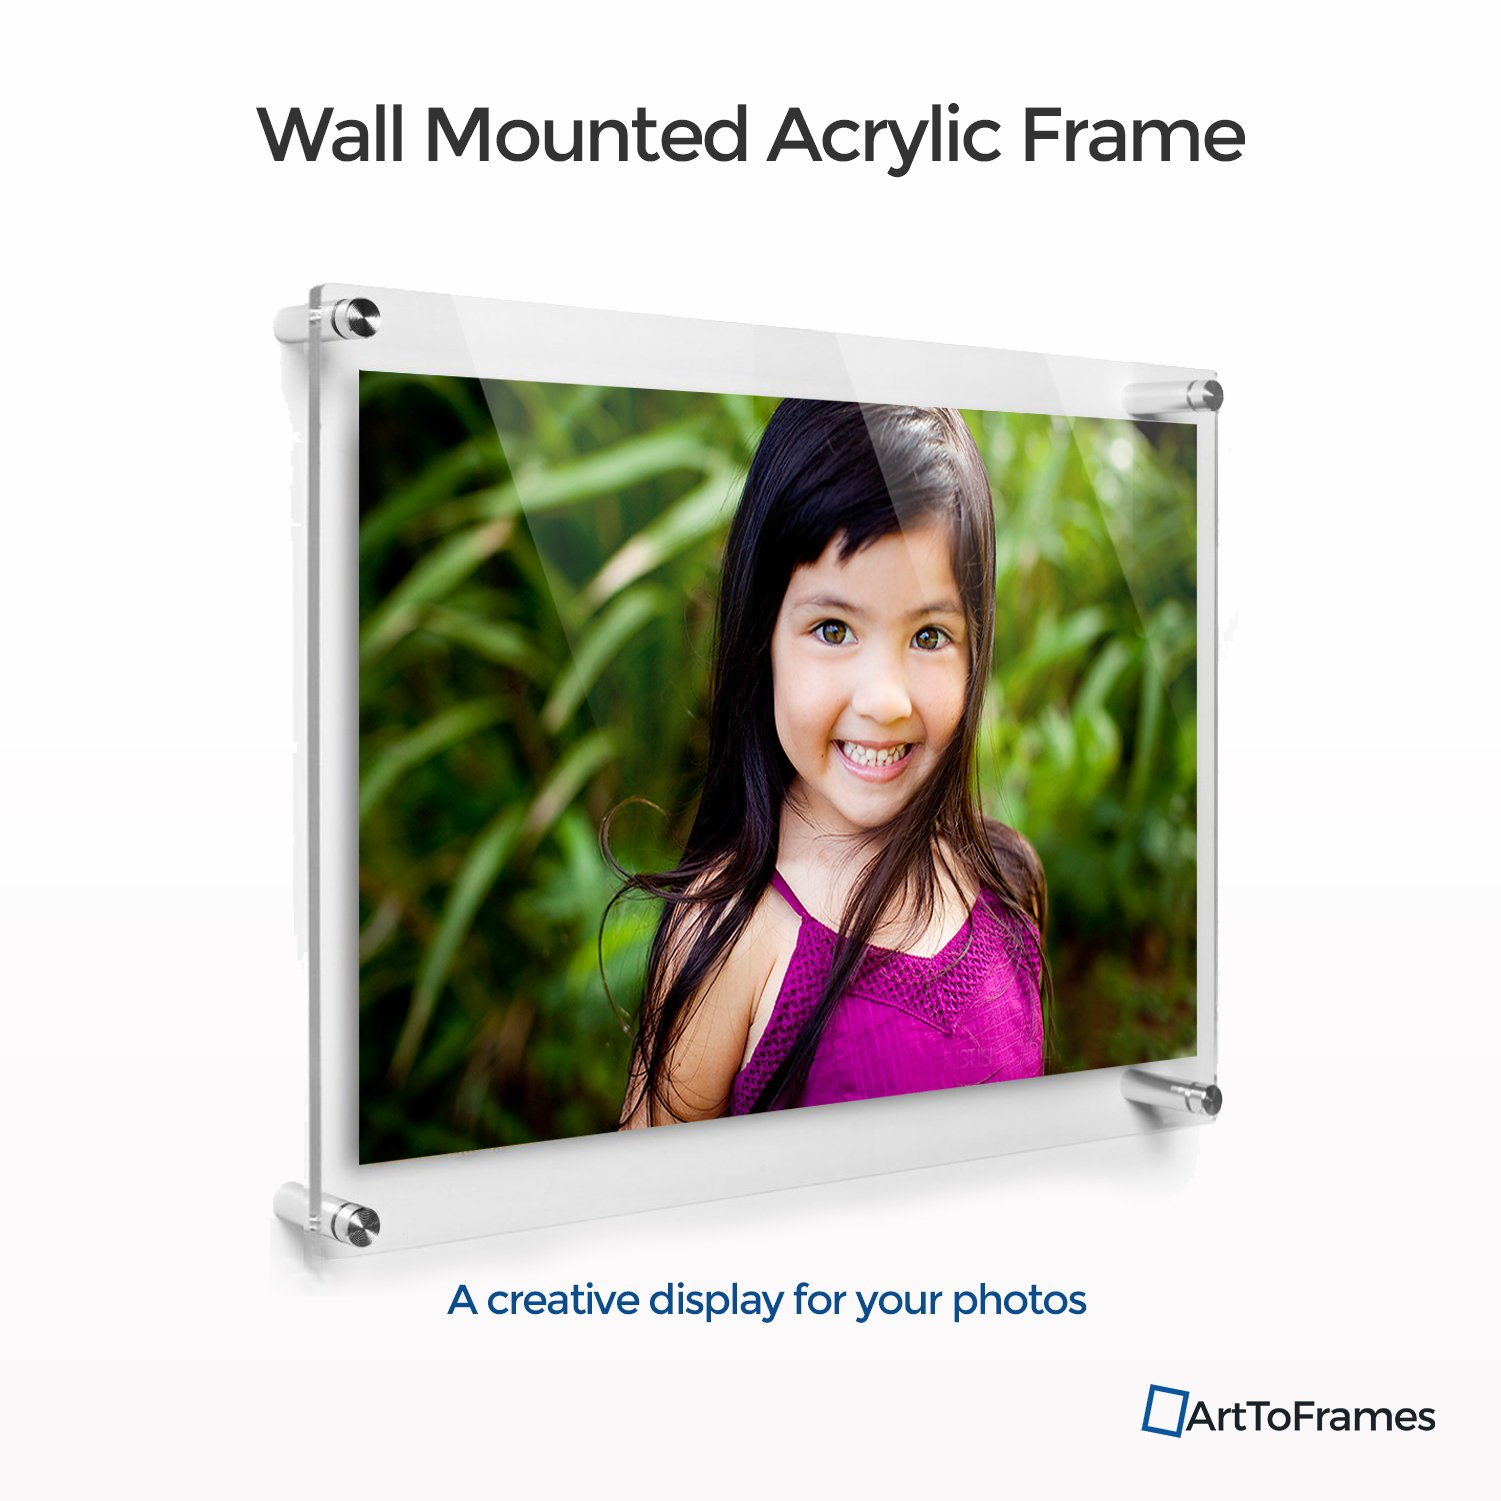 ArtToFrames Floating Acrylic Frame for Pictures Up To 24x36 inches (Full Frame is 27x39) with Muted Chrome Standoff Wall Mount Hardware, Acrylic-109-24x36-MutedChrome